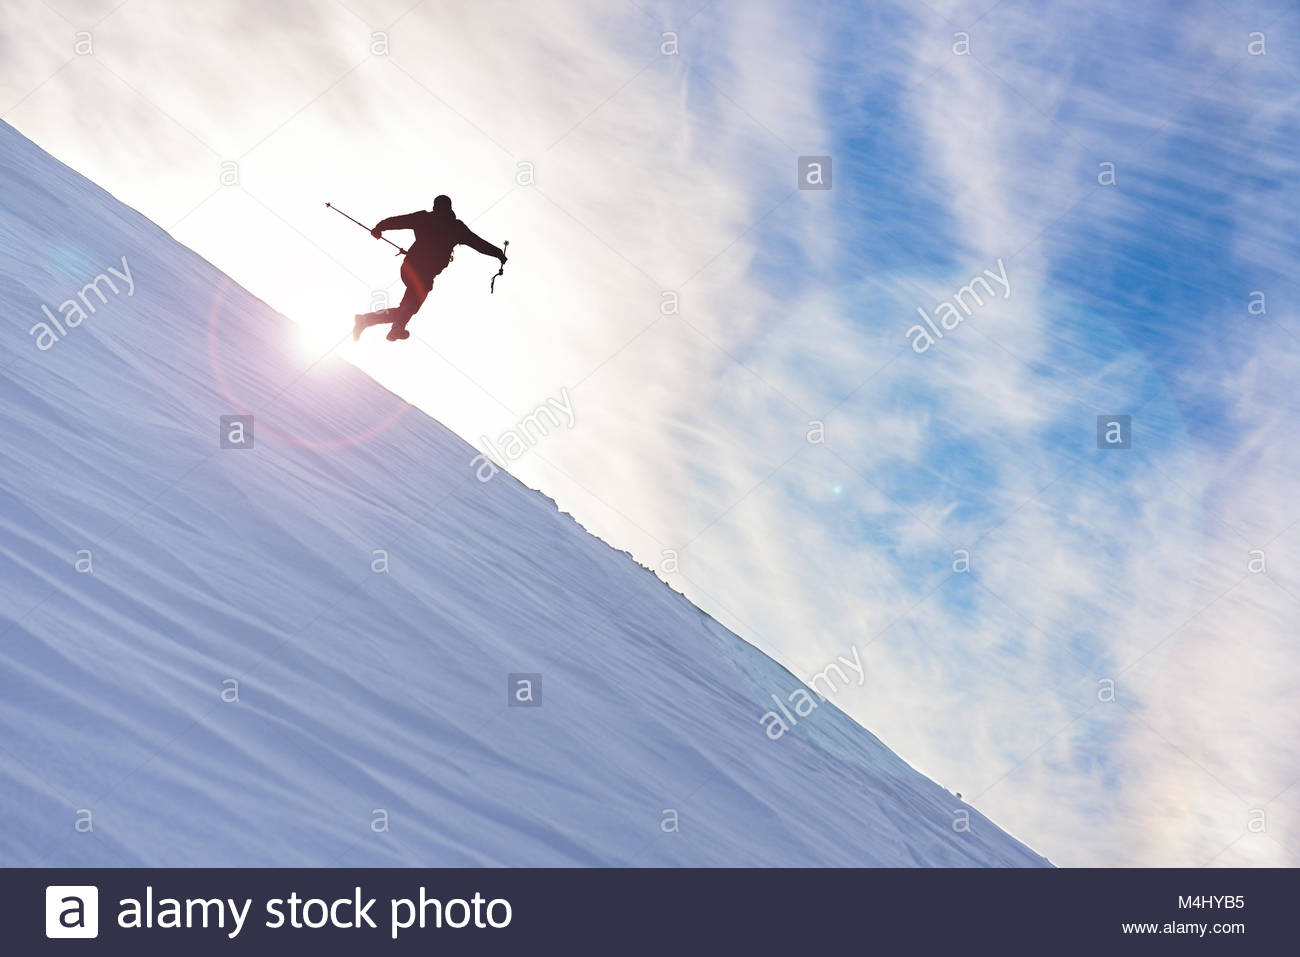 Challenging and dangerous mountaineering positions - Stock Image